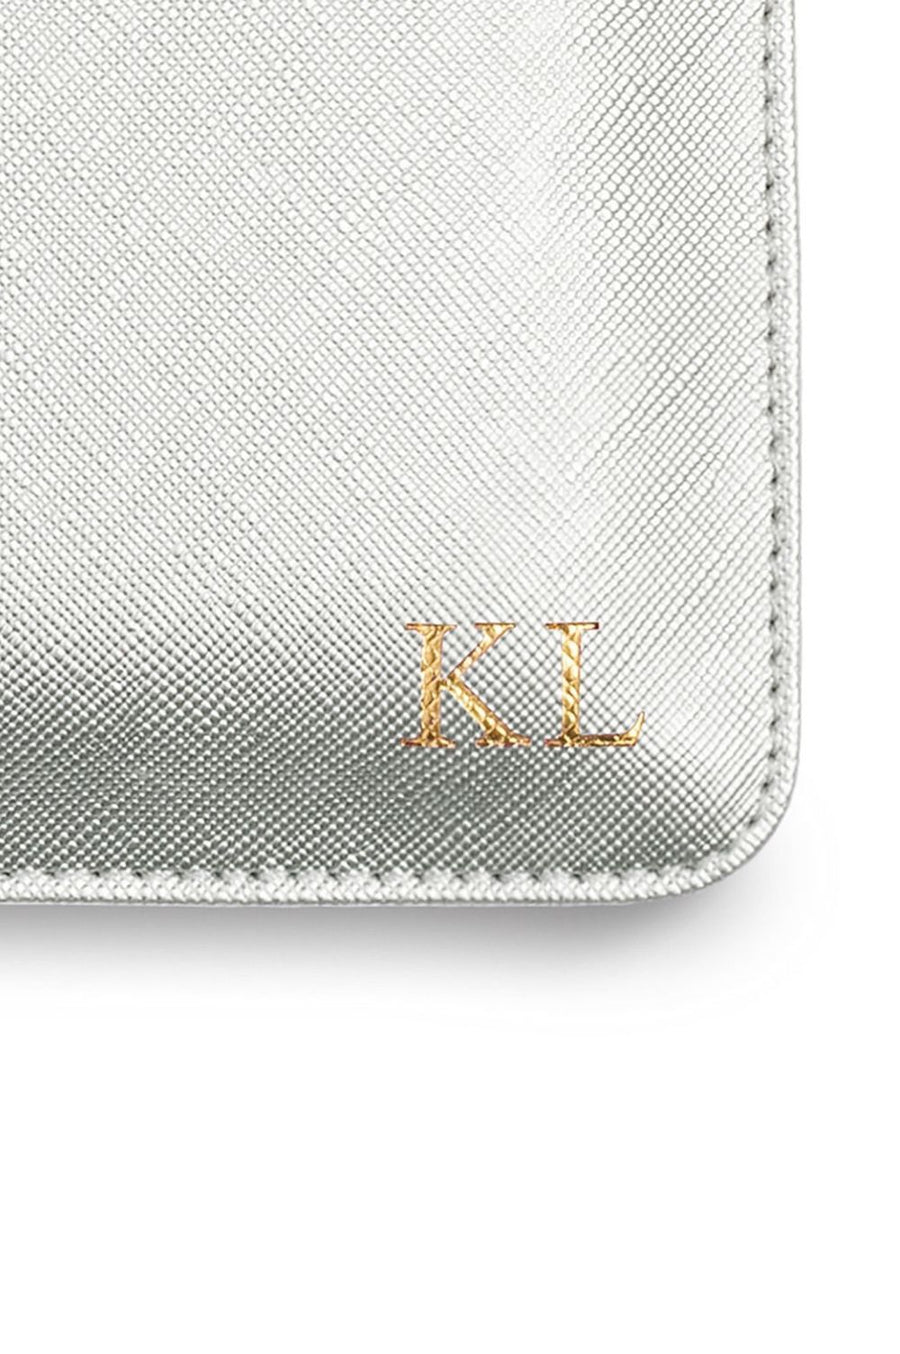 Katie Loxton 'Mother of the Groom' Perfect Pouch